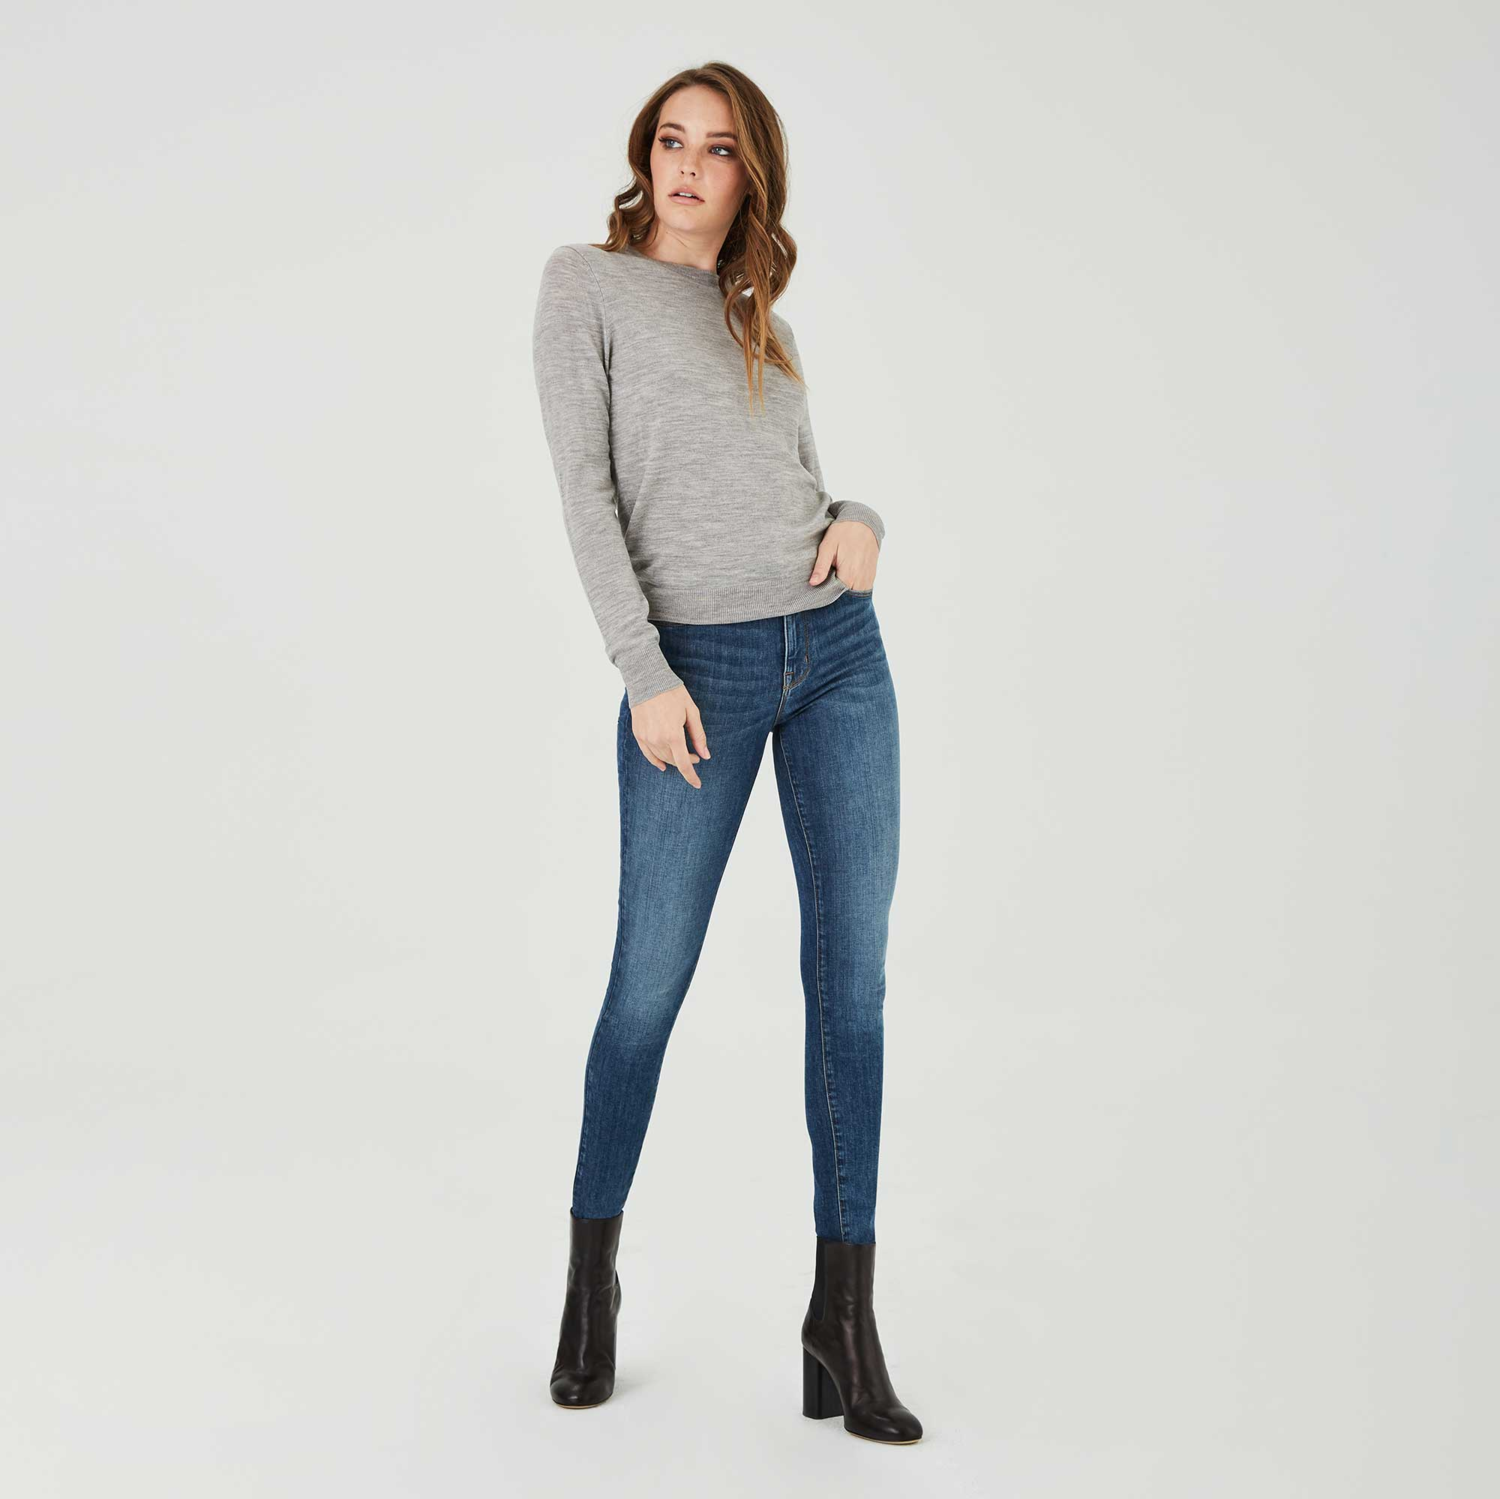 High Rise Skinny Jeans in Two Year Wash